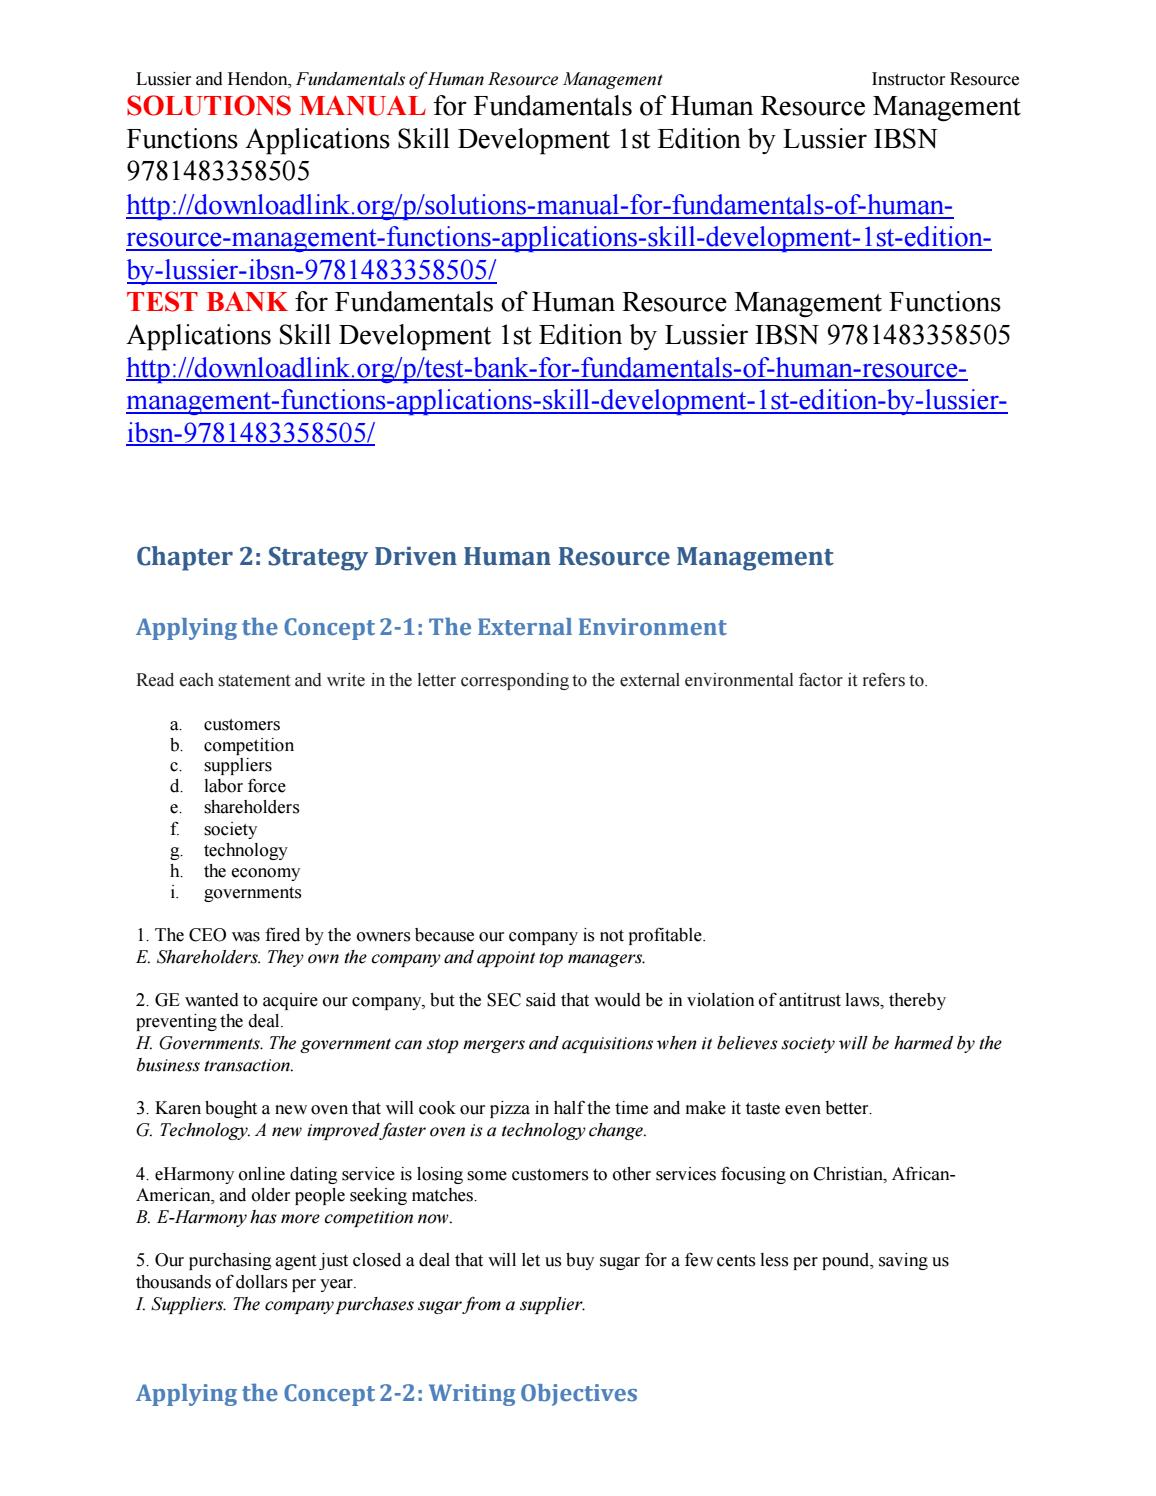 Prevention of writing and reading violations 78